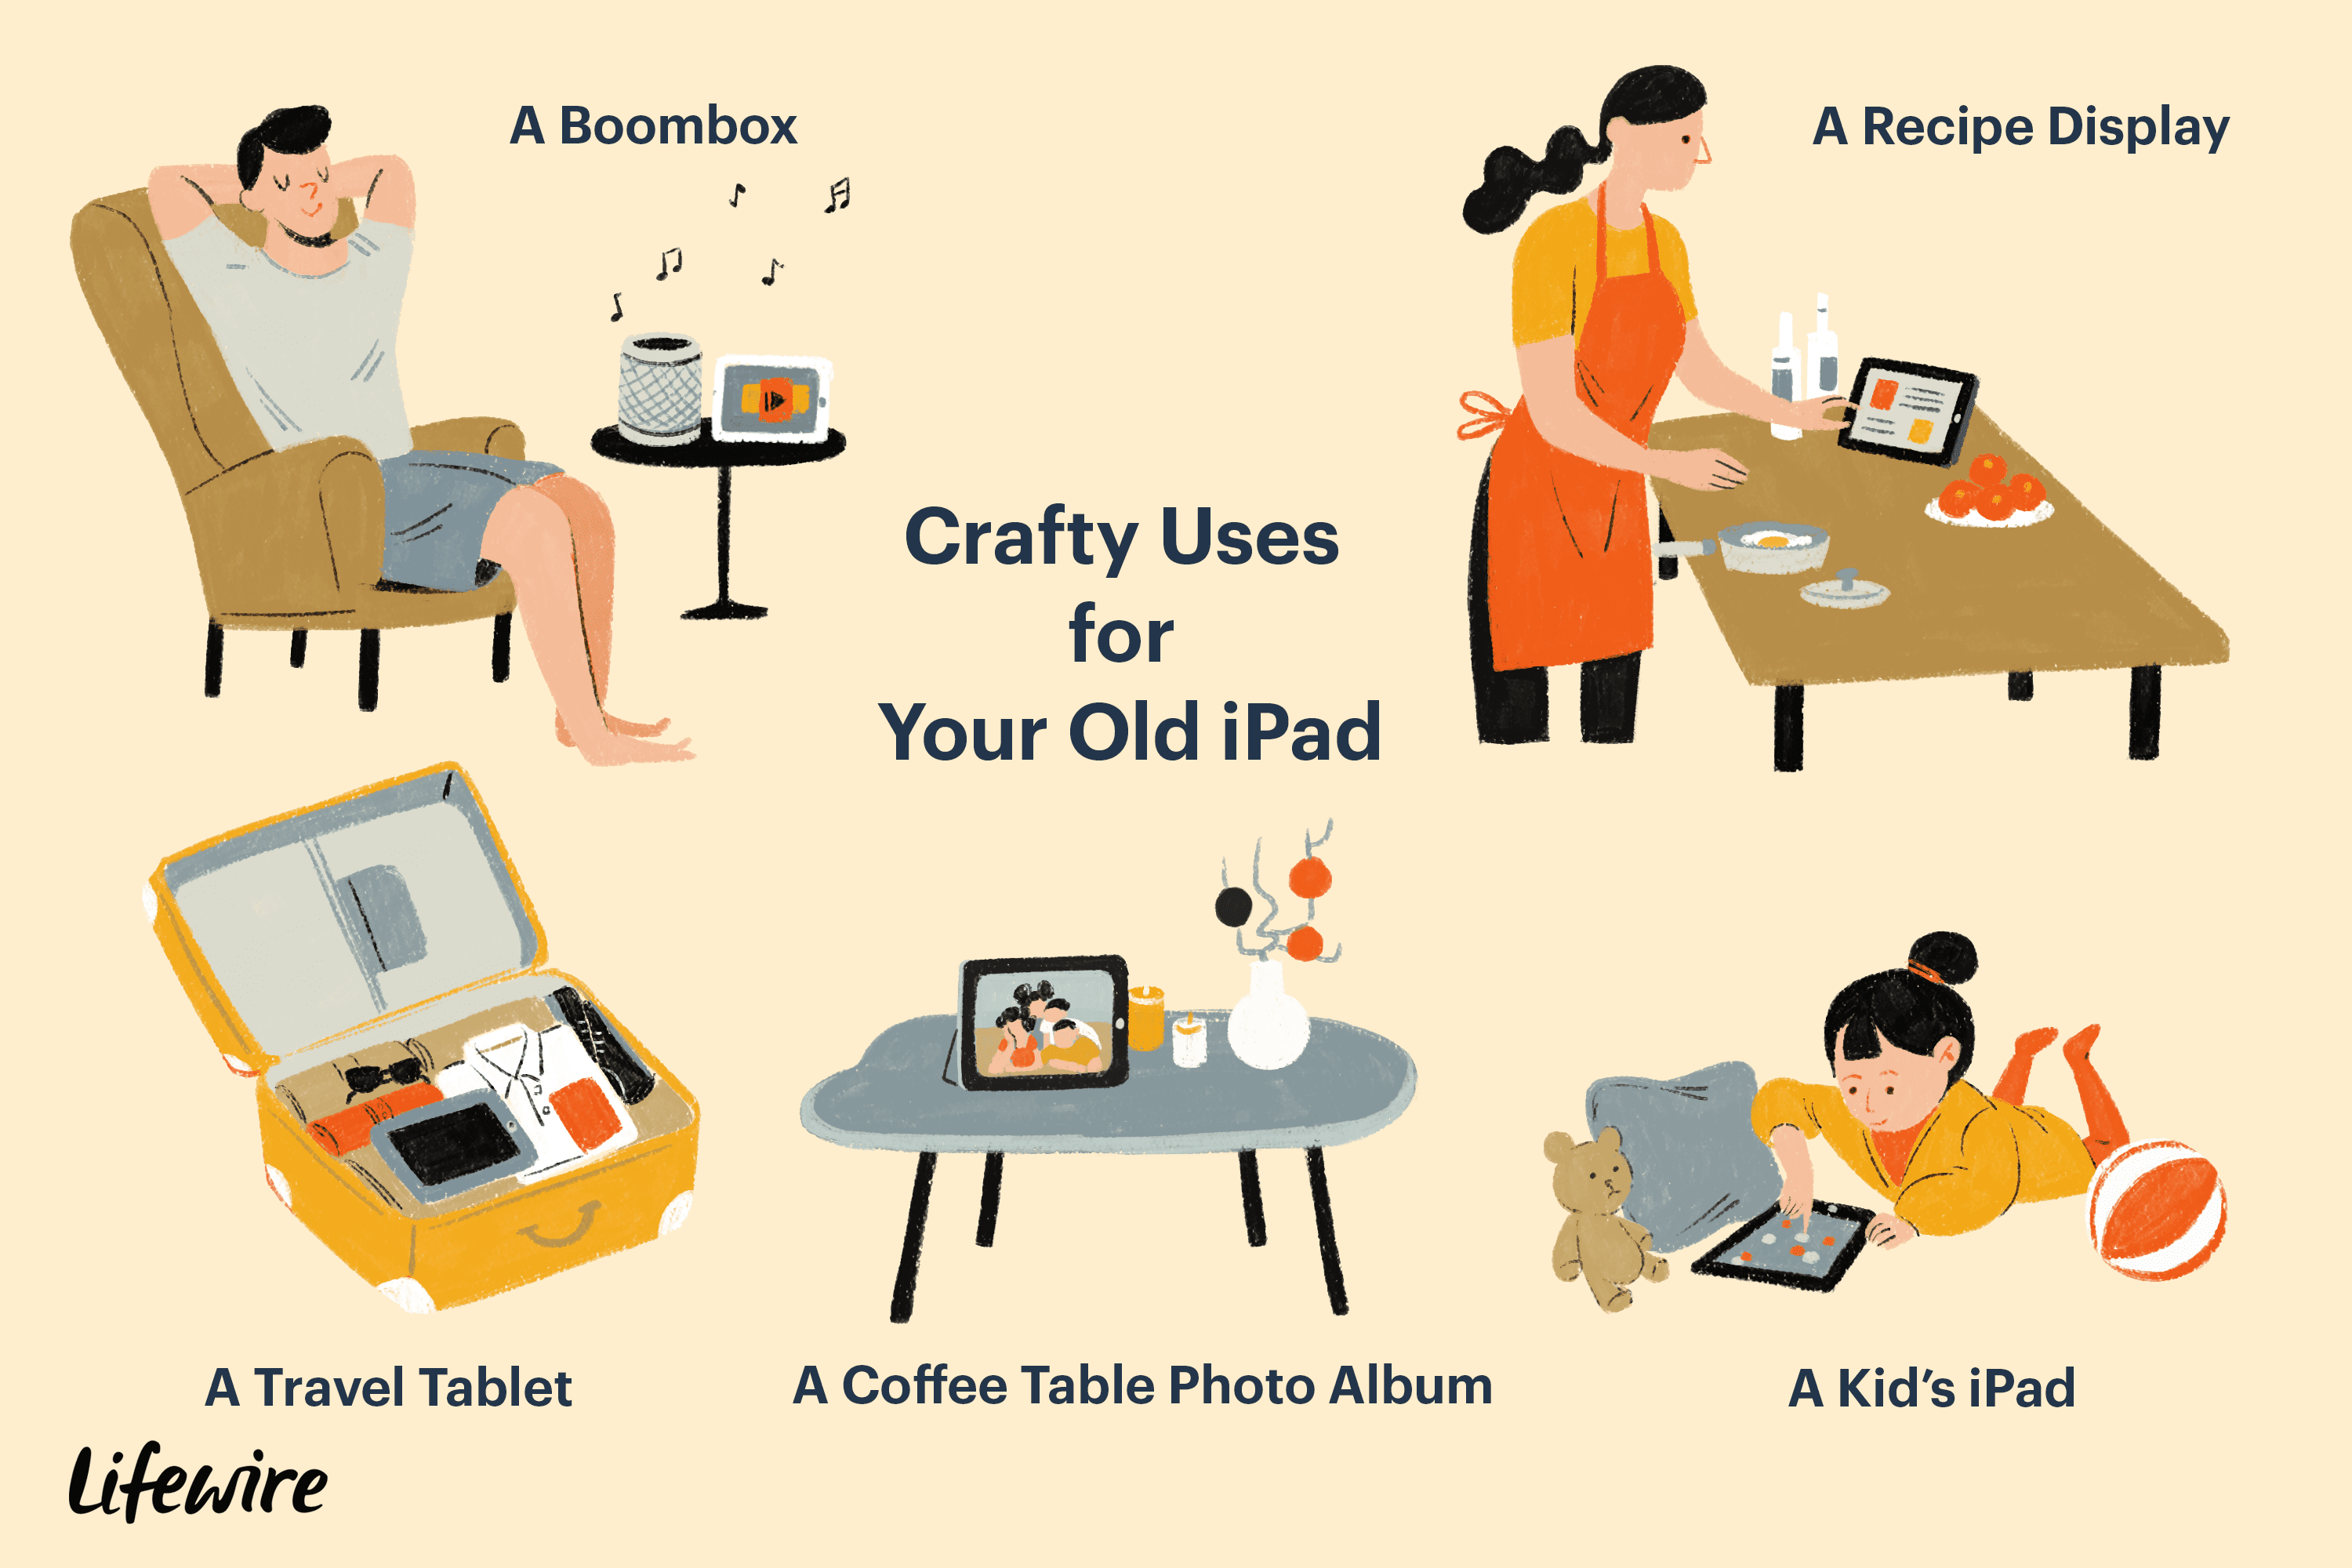 Uses for a First-Generation (Original) iPad